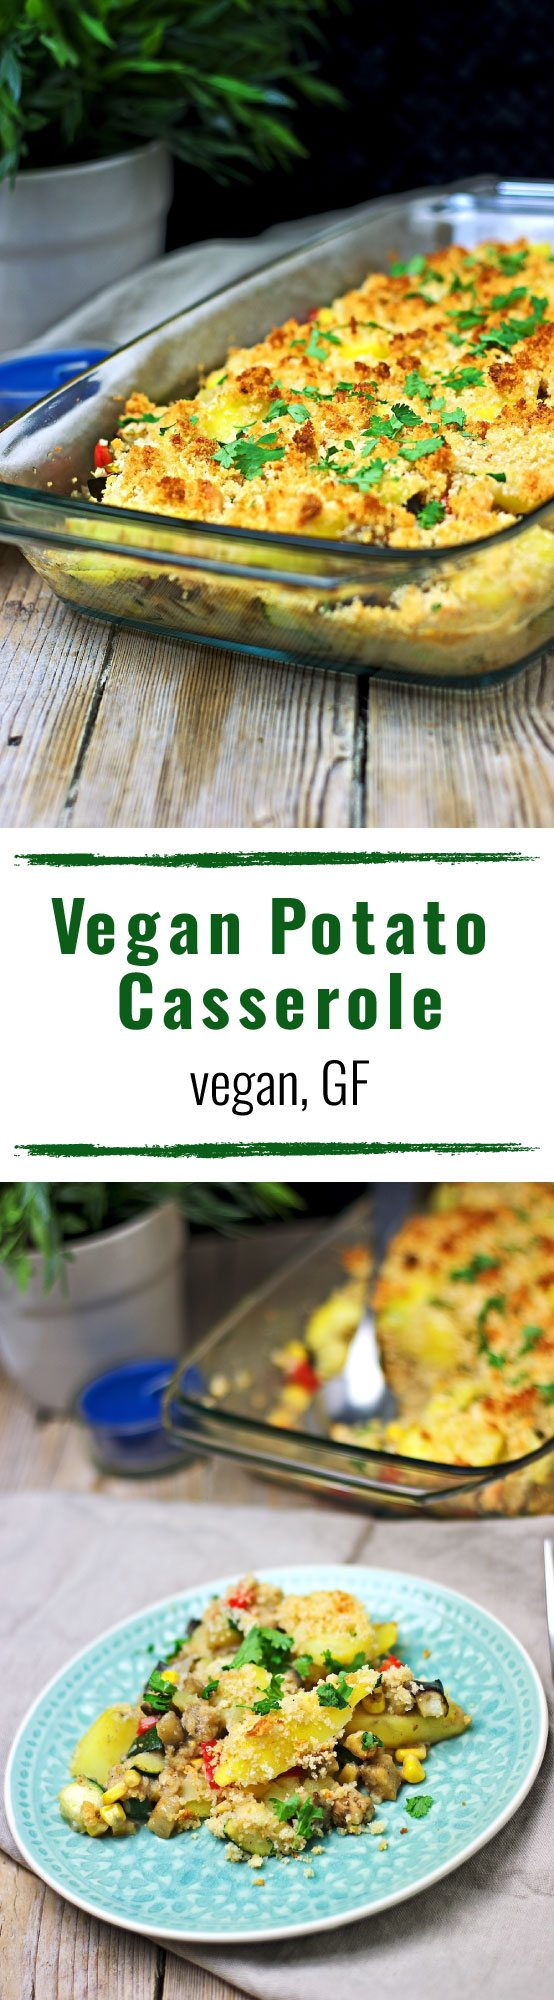 Vegan Potato Casserole | #vegan #glutenfree #contentednesscooking